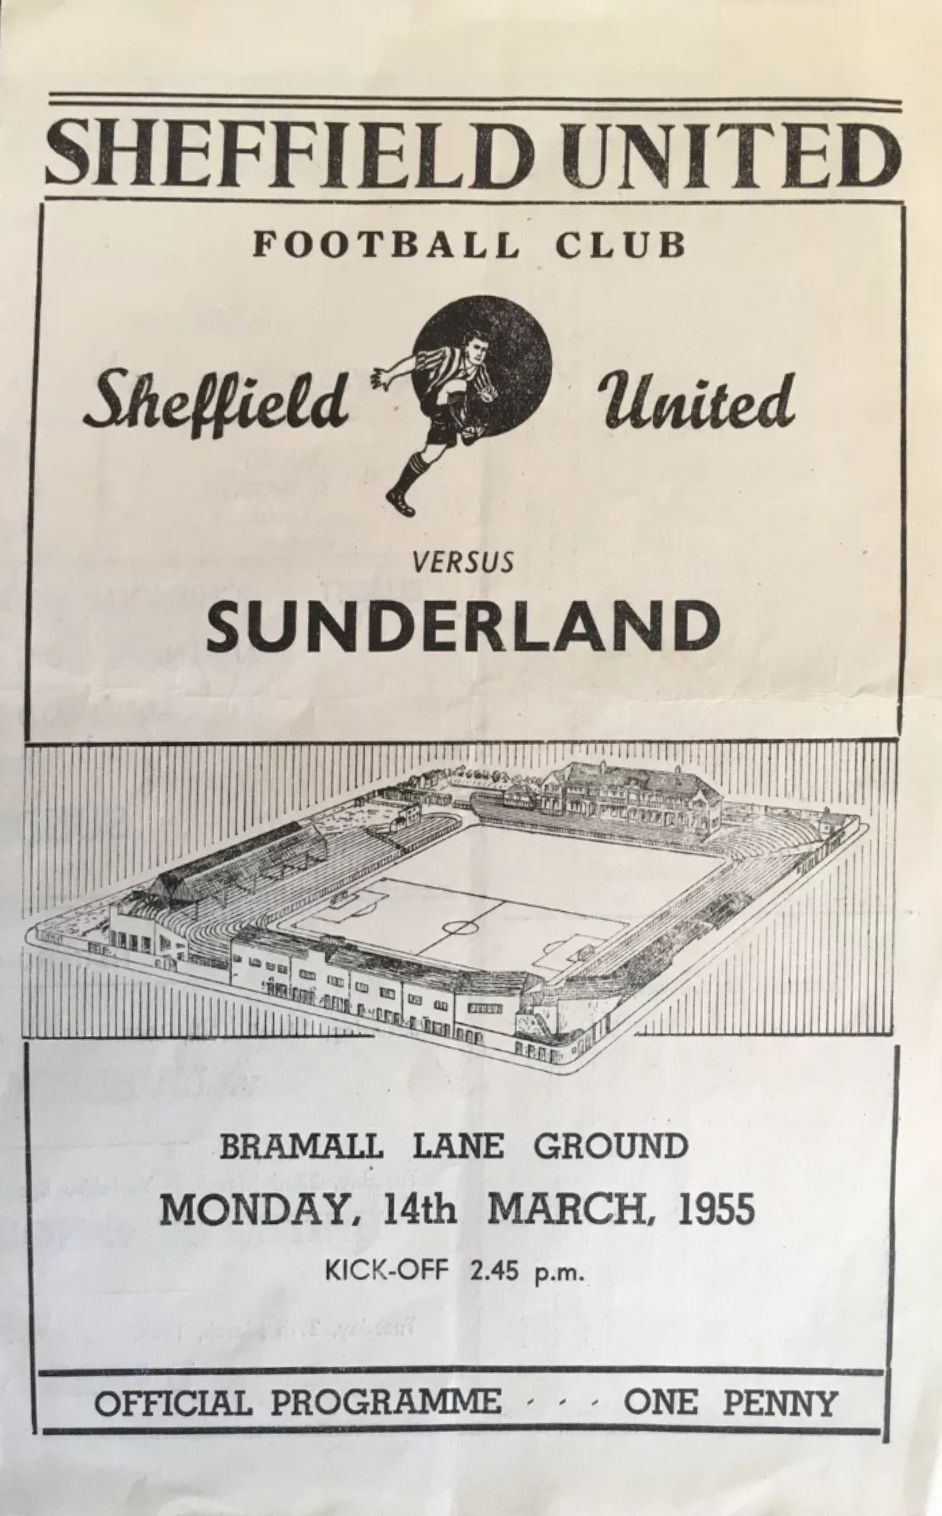 Pin by Ian Cole on Vintage Soccer Sheffield united